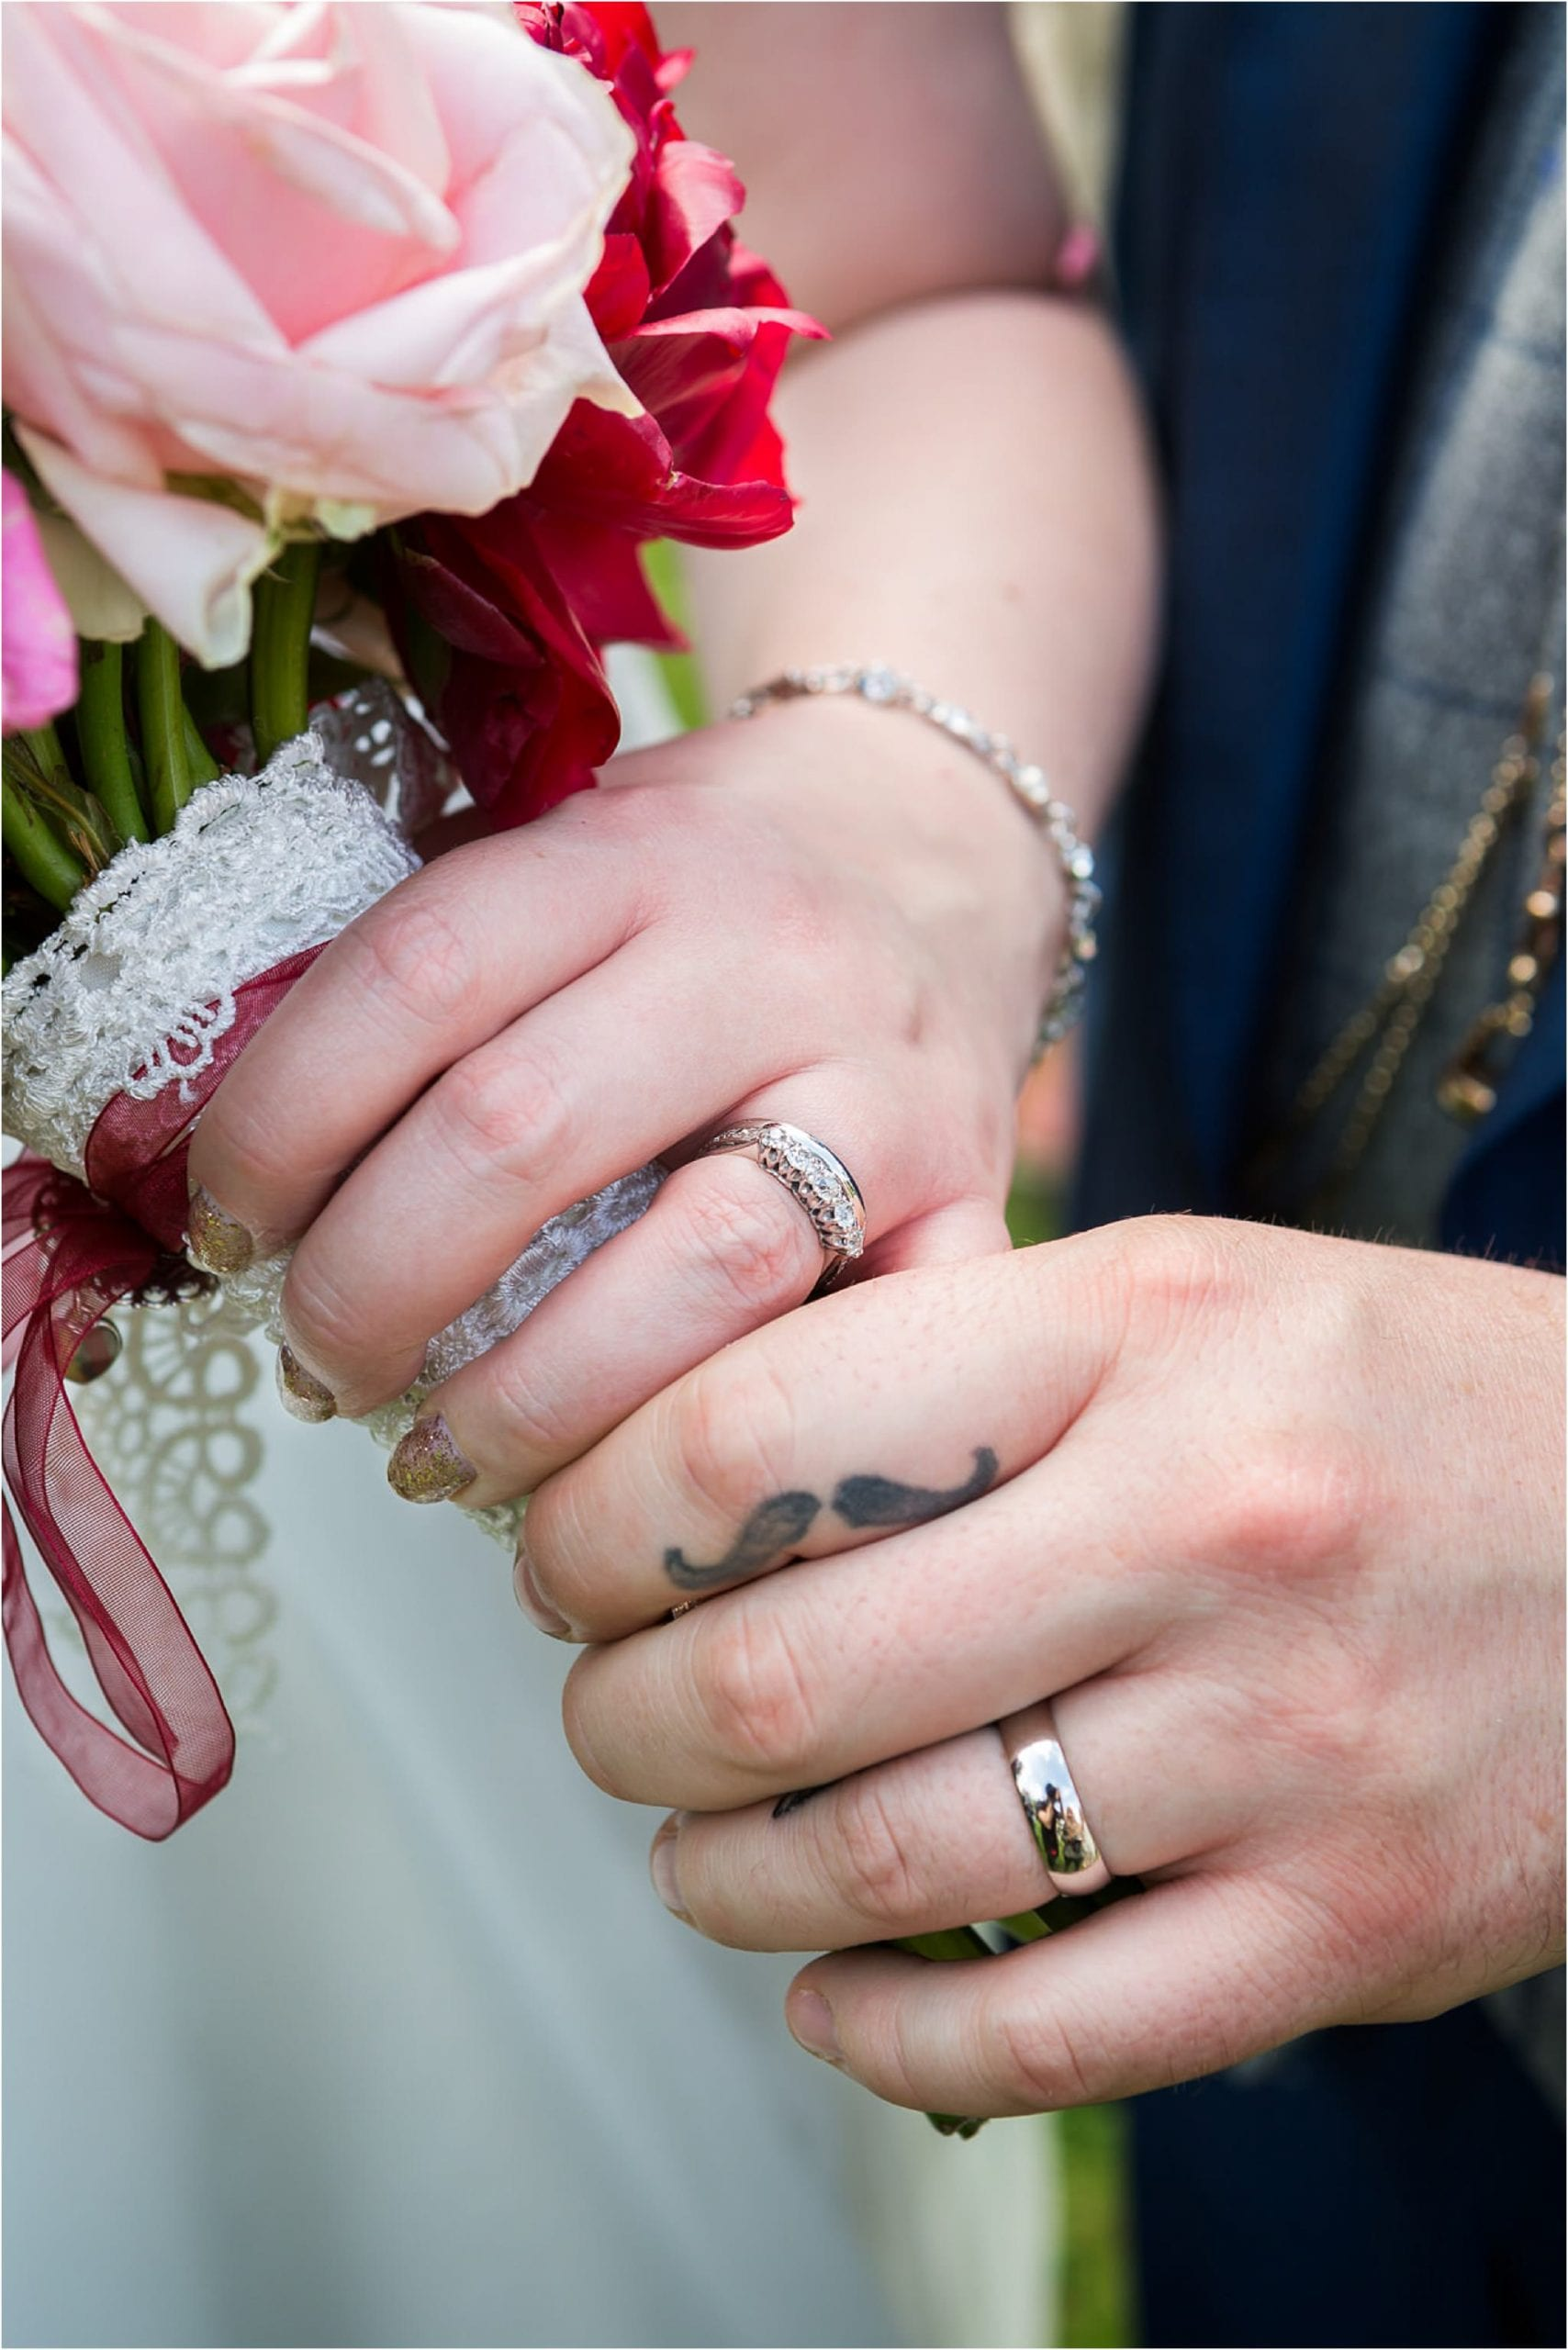 An Intimate Wedding - Worcestershire - S2 Images Ltd